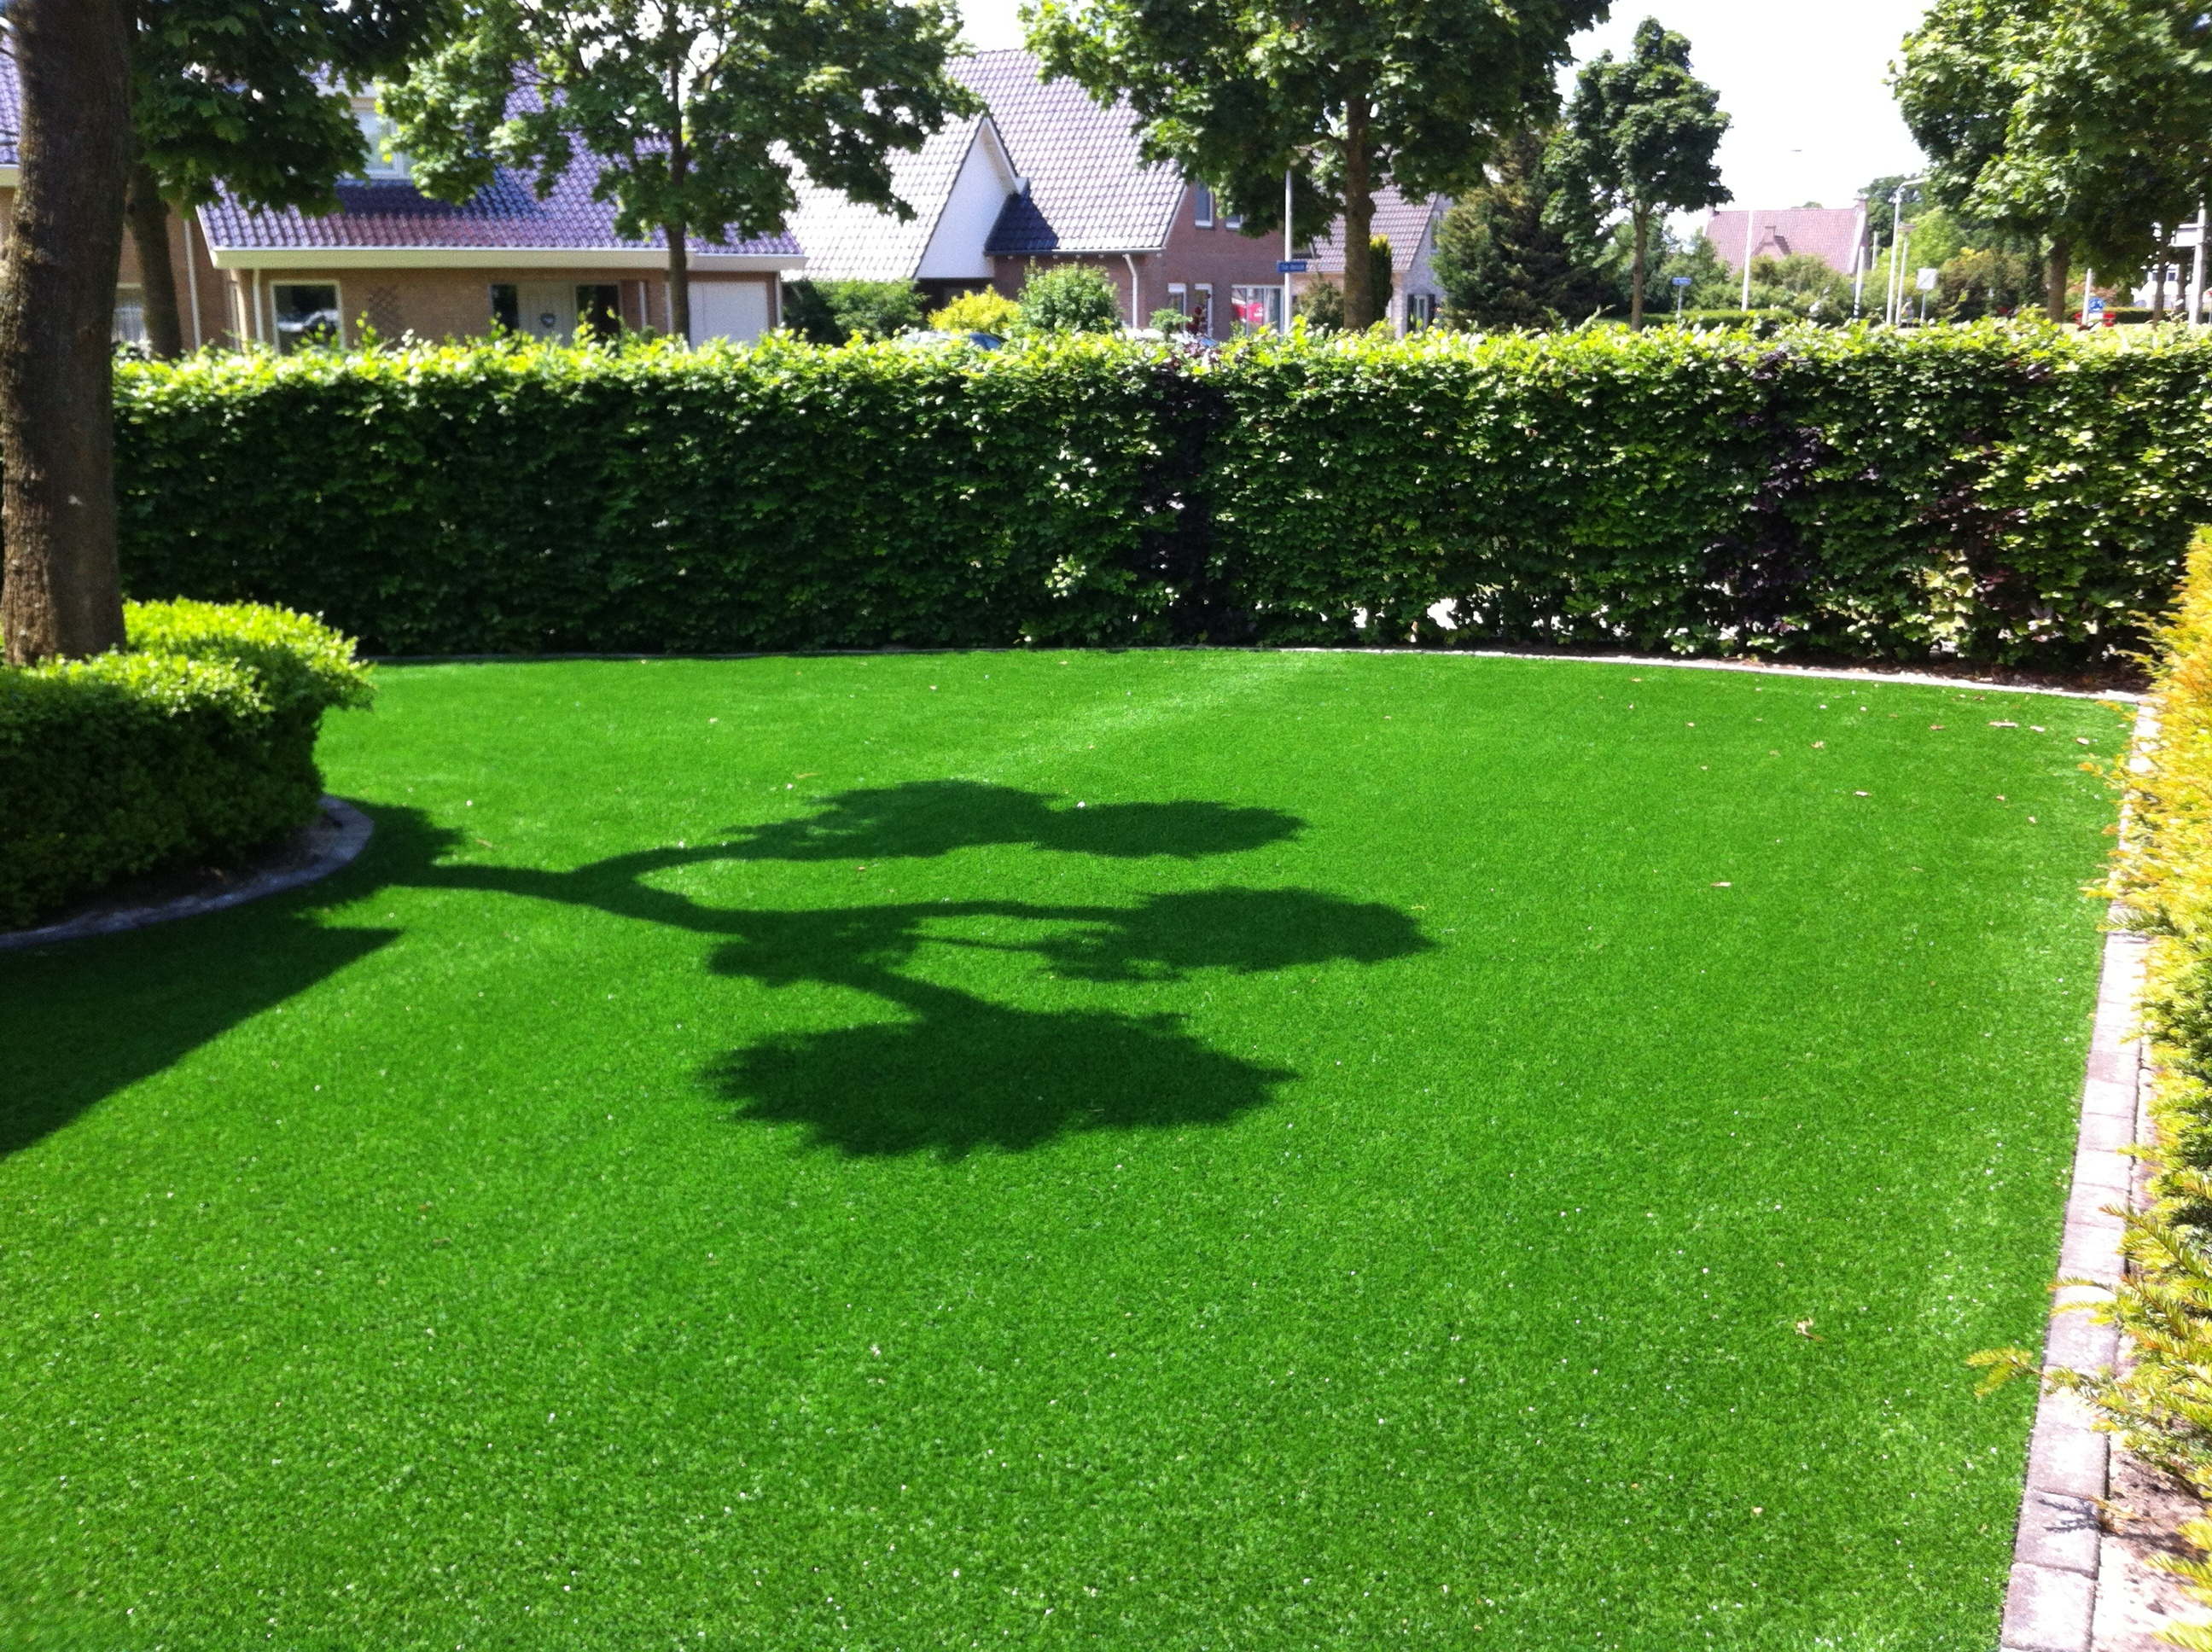 Best way to plant grass seed - Buy Grass Plant Buy Grass Seeds Today Offer